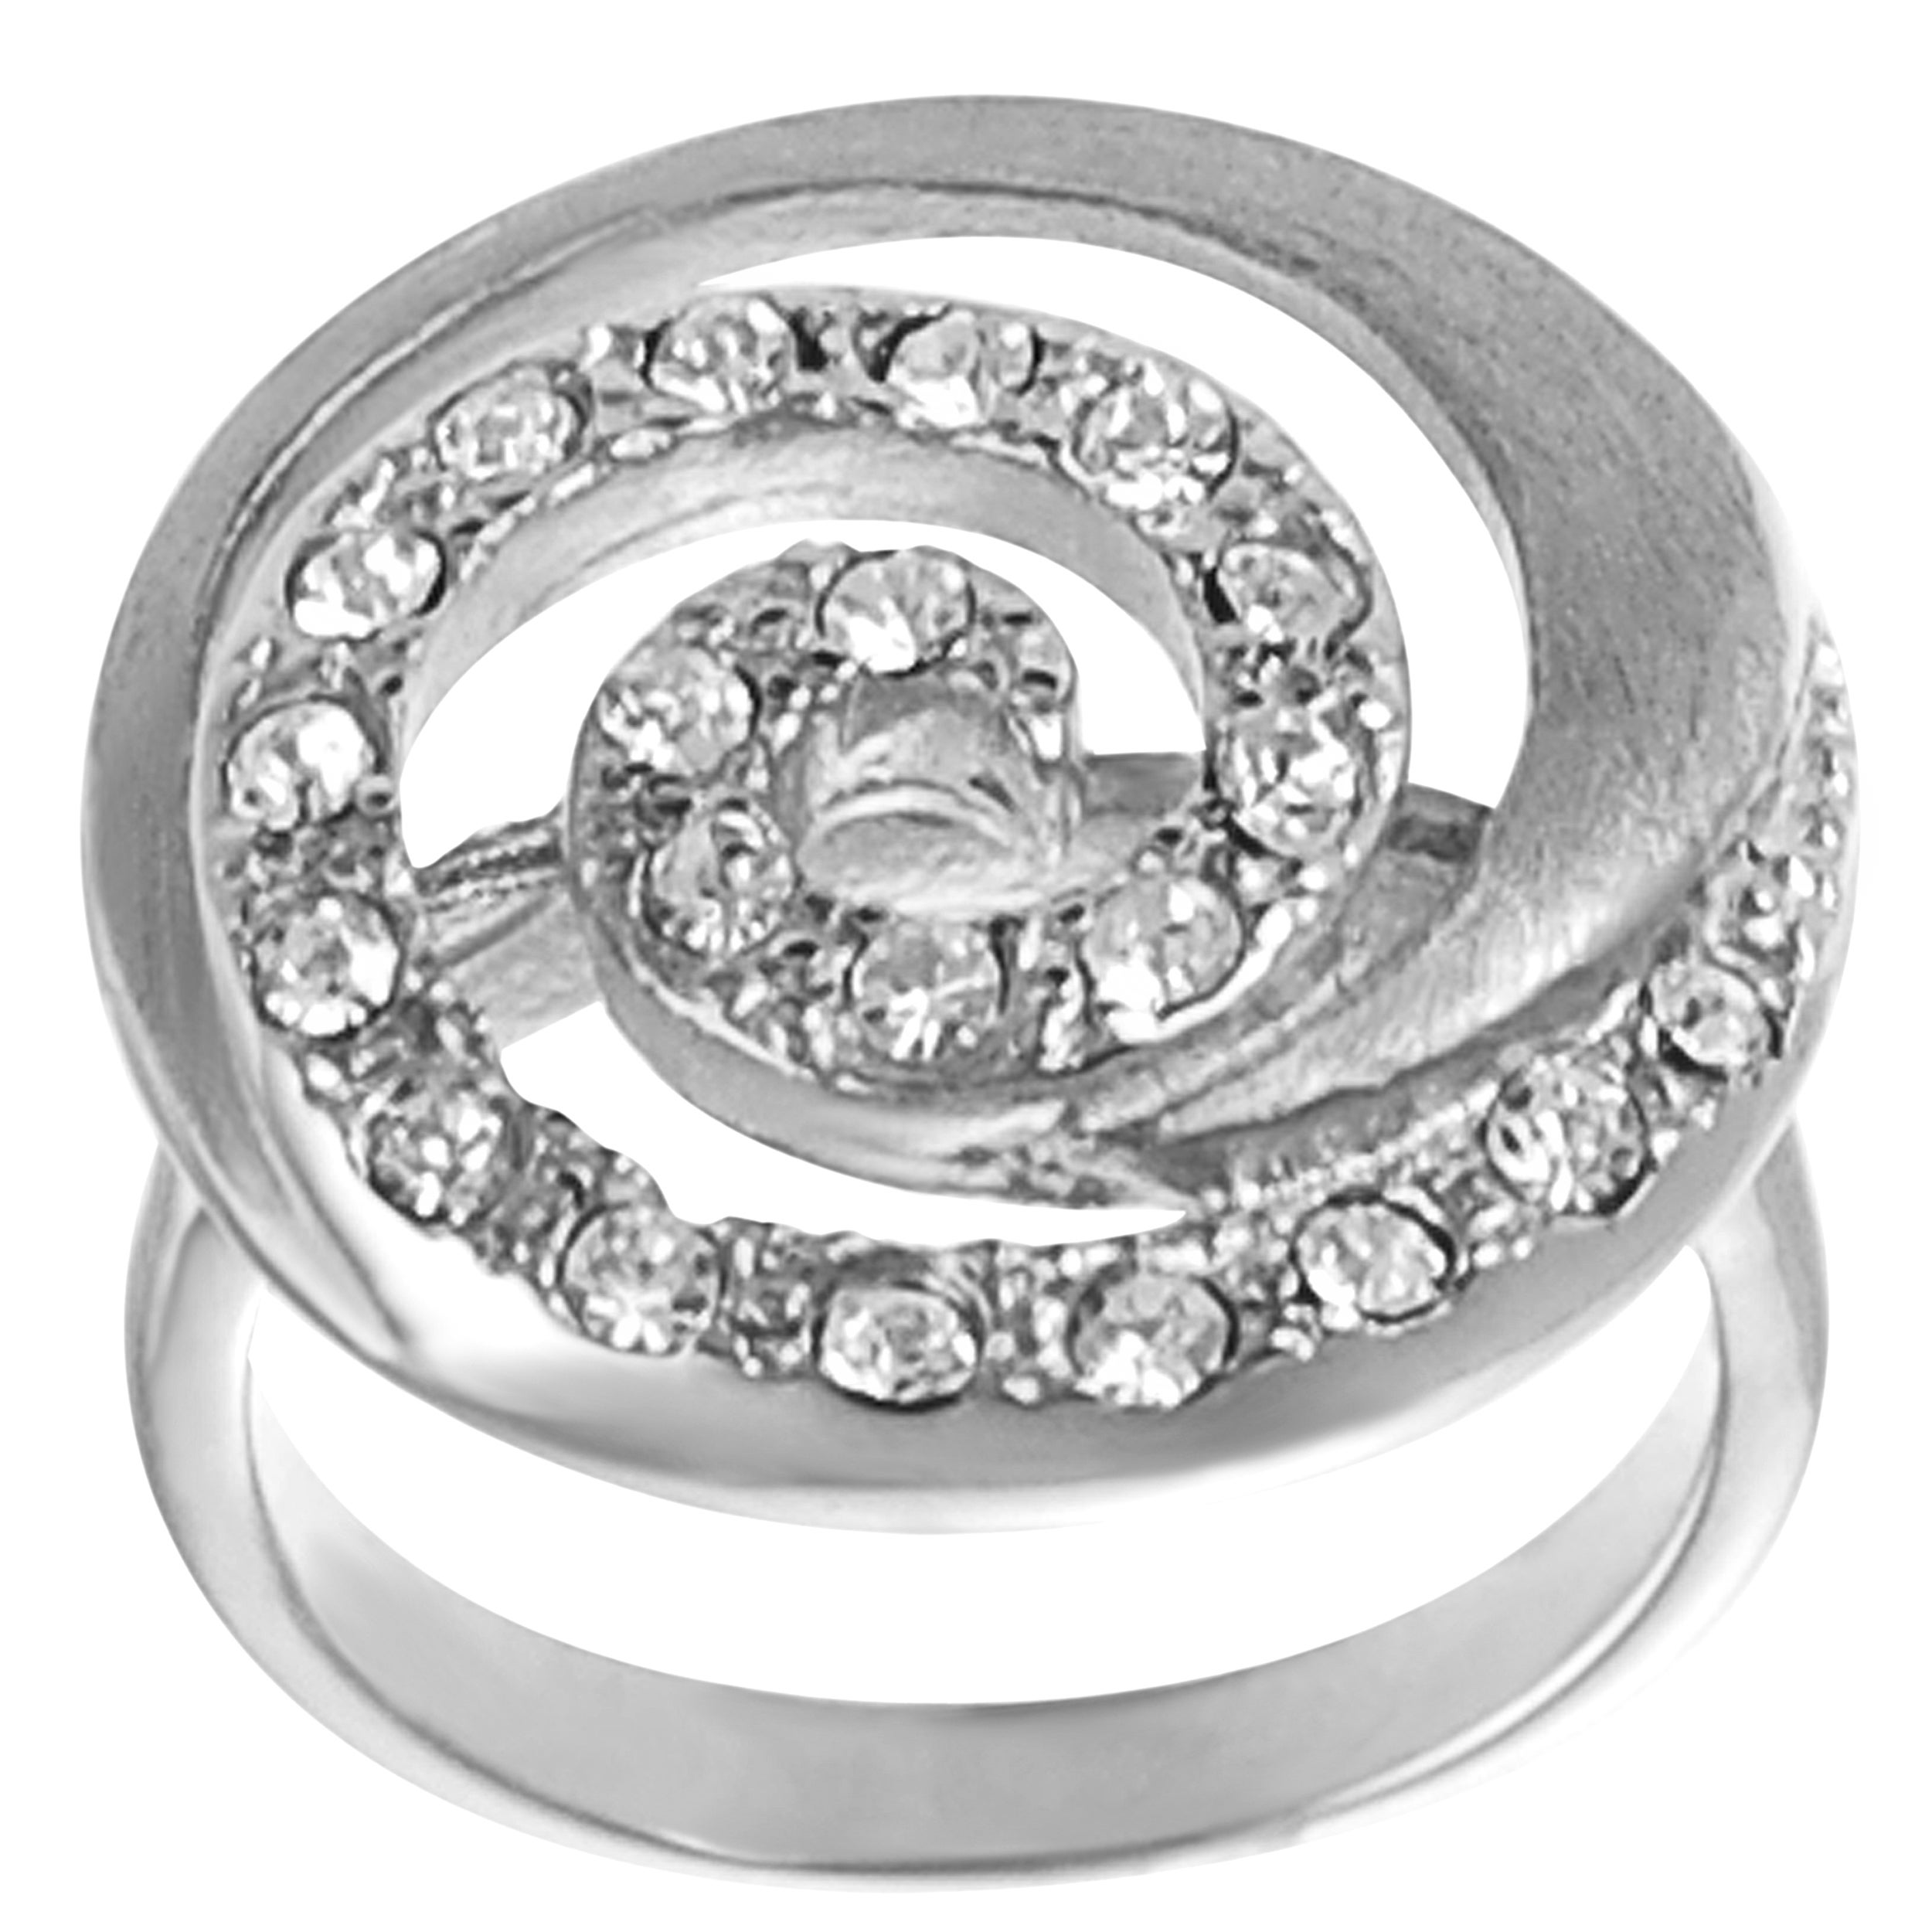 Journee Collection Steel Cubic Zirconia Brushed Spiral Ring